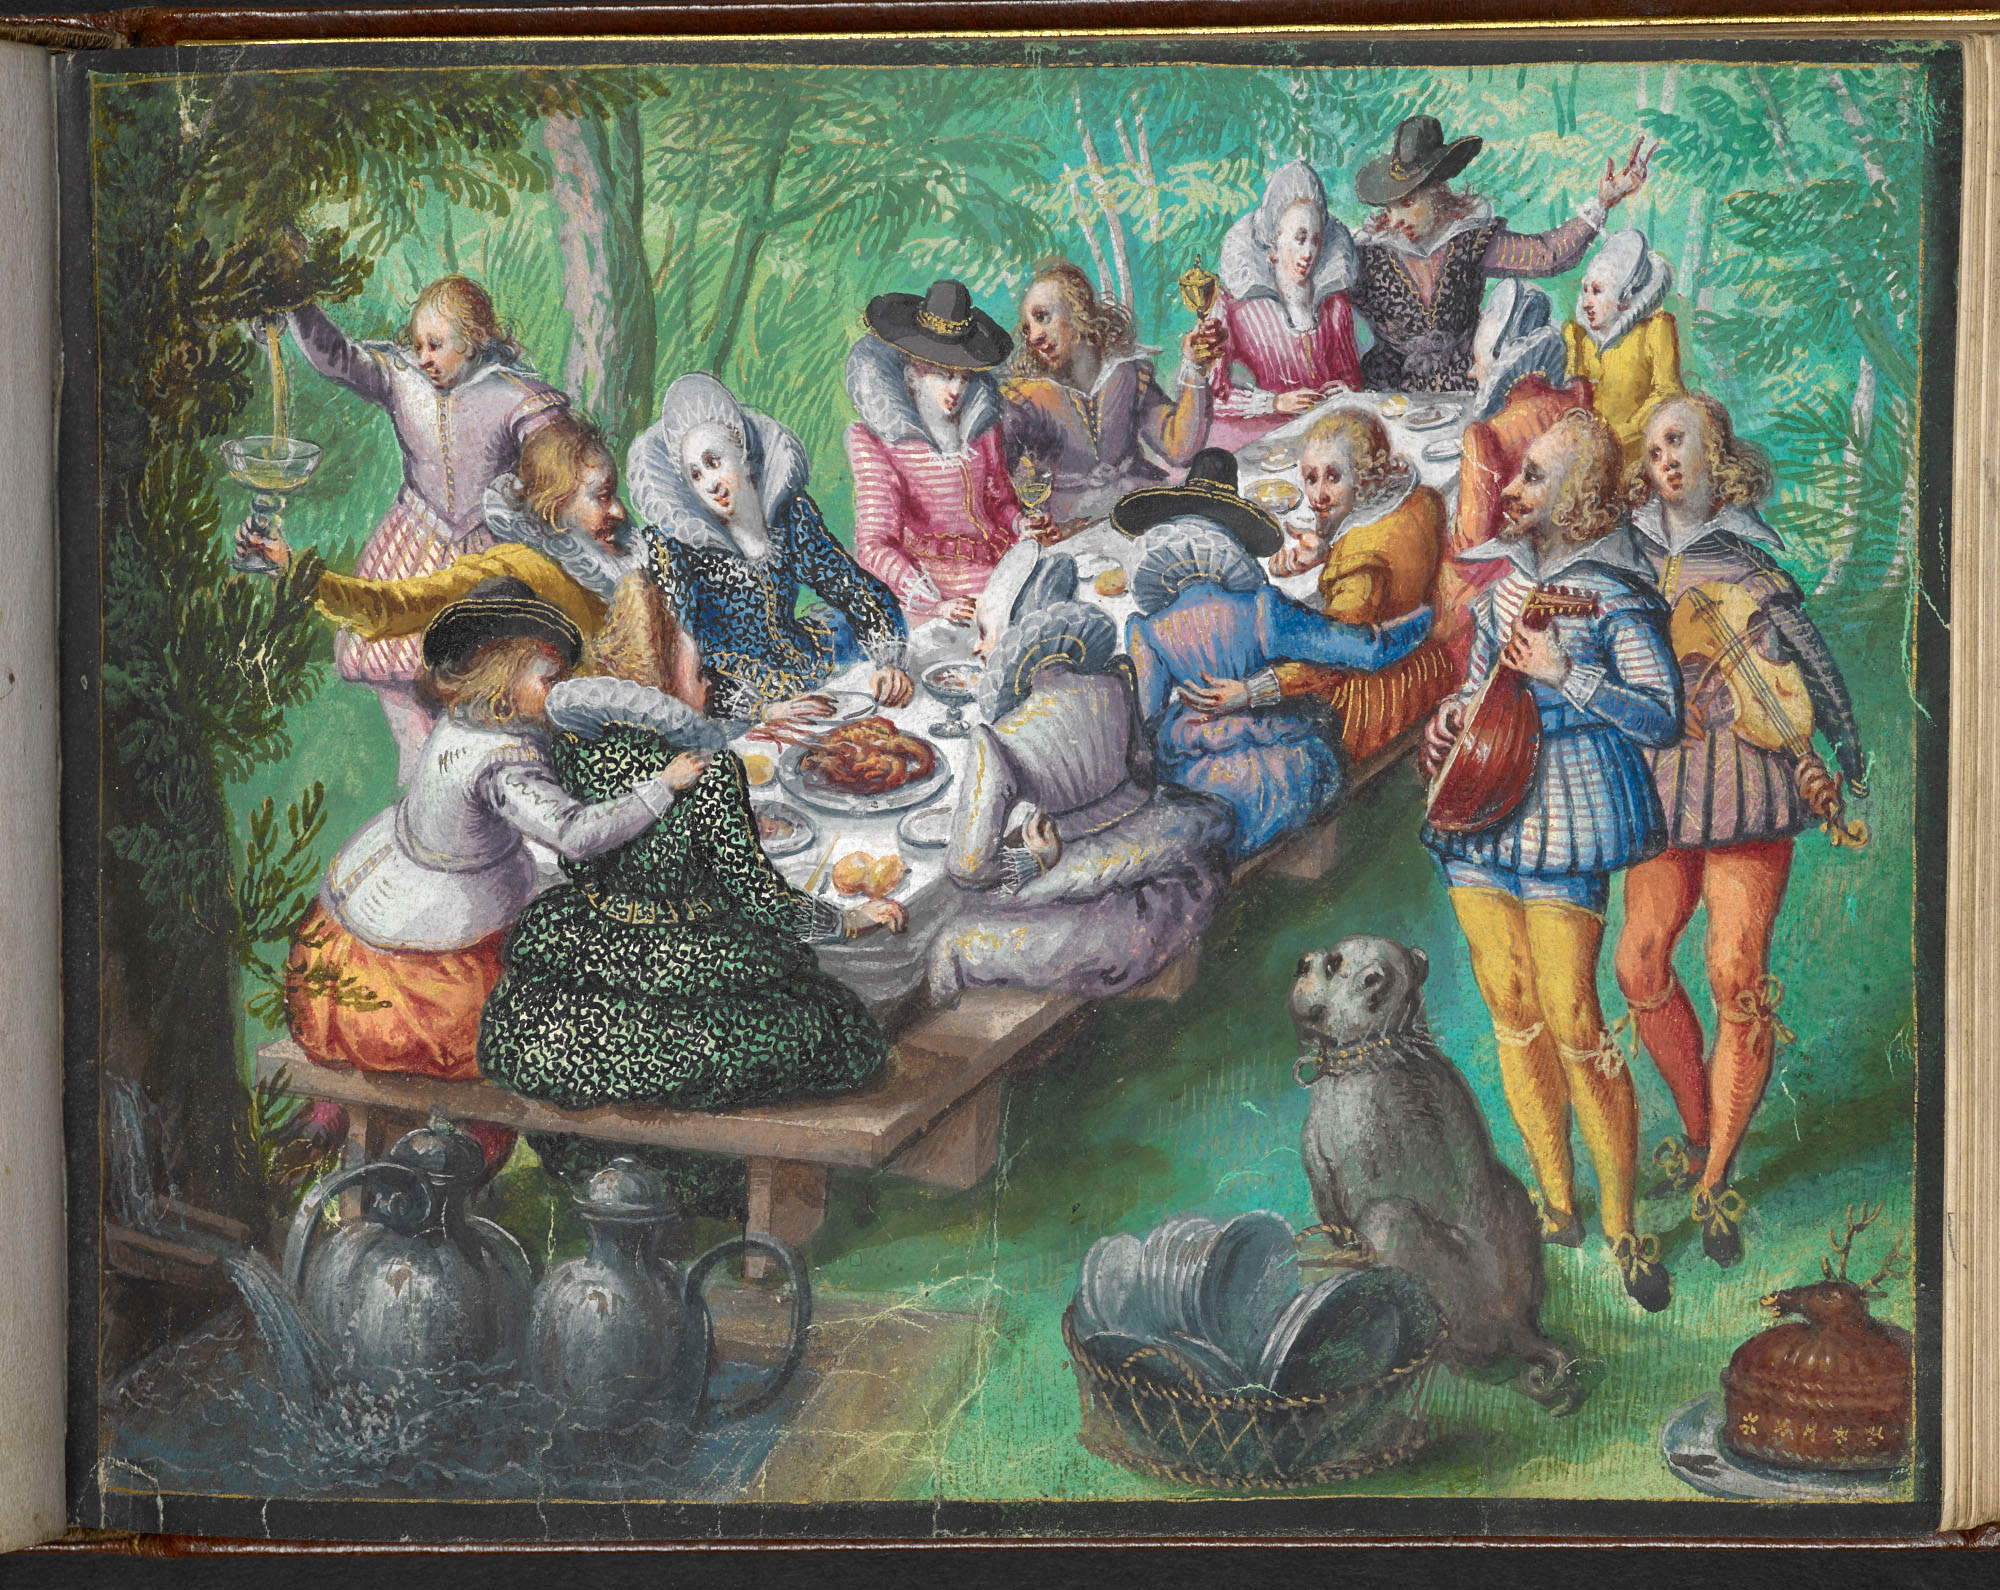 a634e8dcef71 Miniature painting of banquet in garden  bright clothes from around 1600.